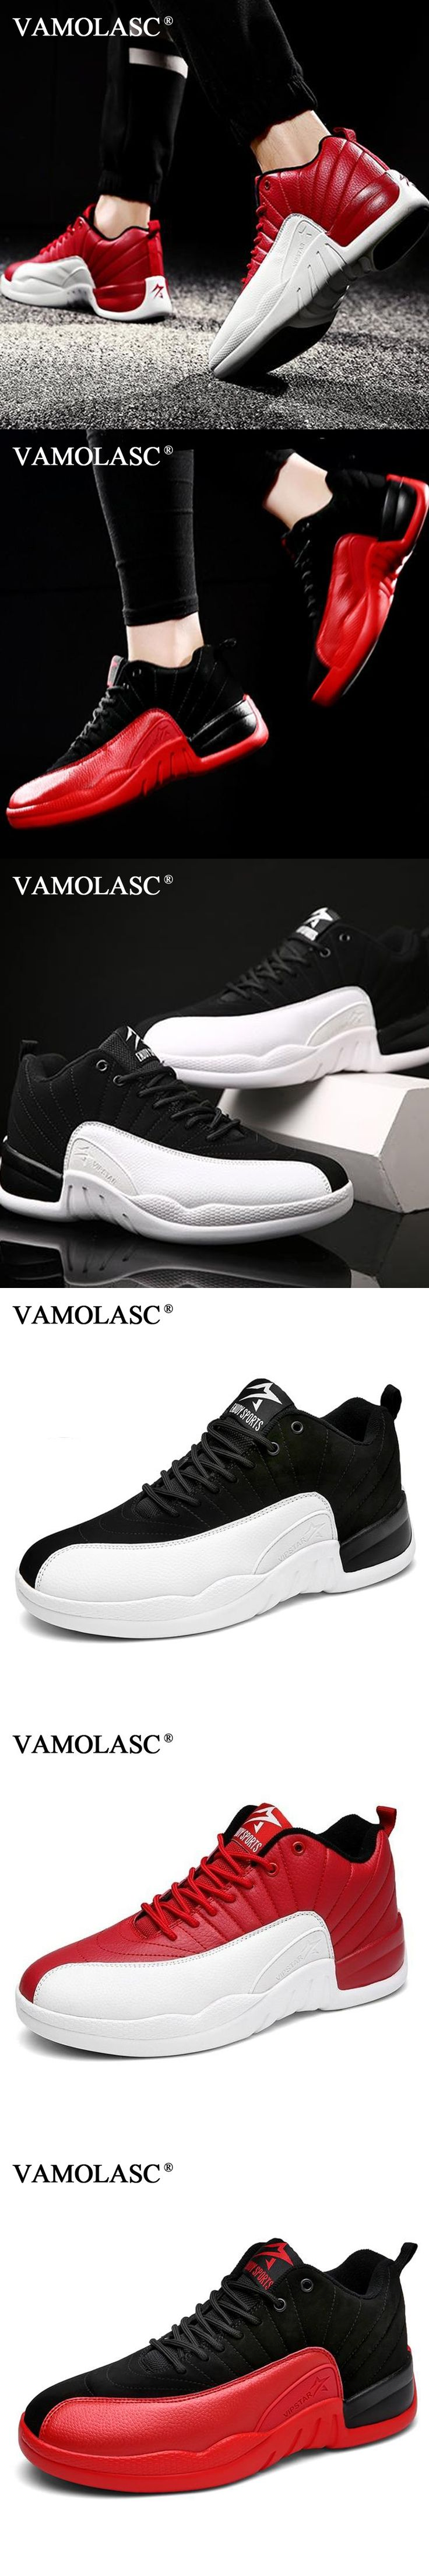 VAMOLASC New Men's Leather Basketball Shoes Thread Breathable Sneakers High Top Athletic Shoes Sports Shoes BS0341